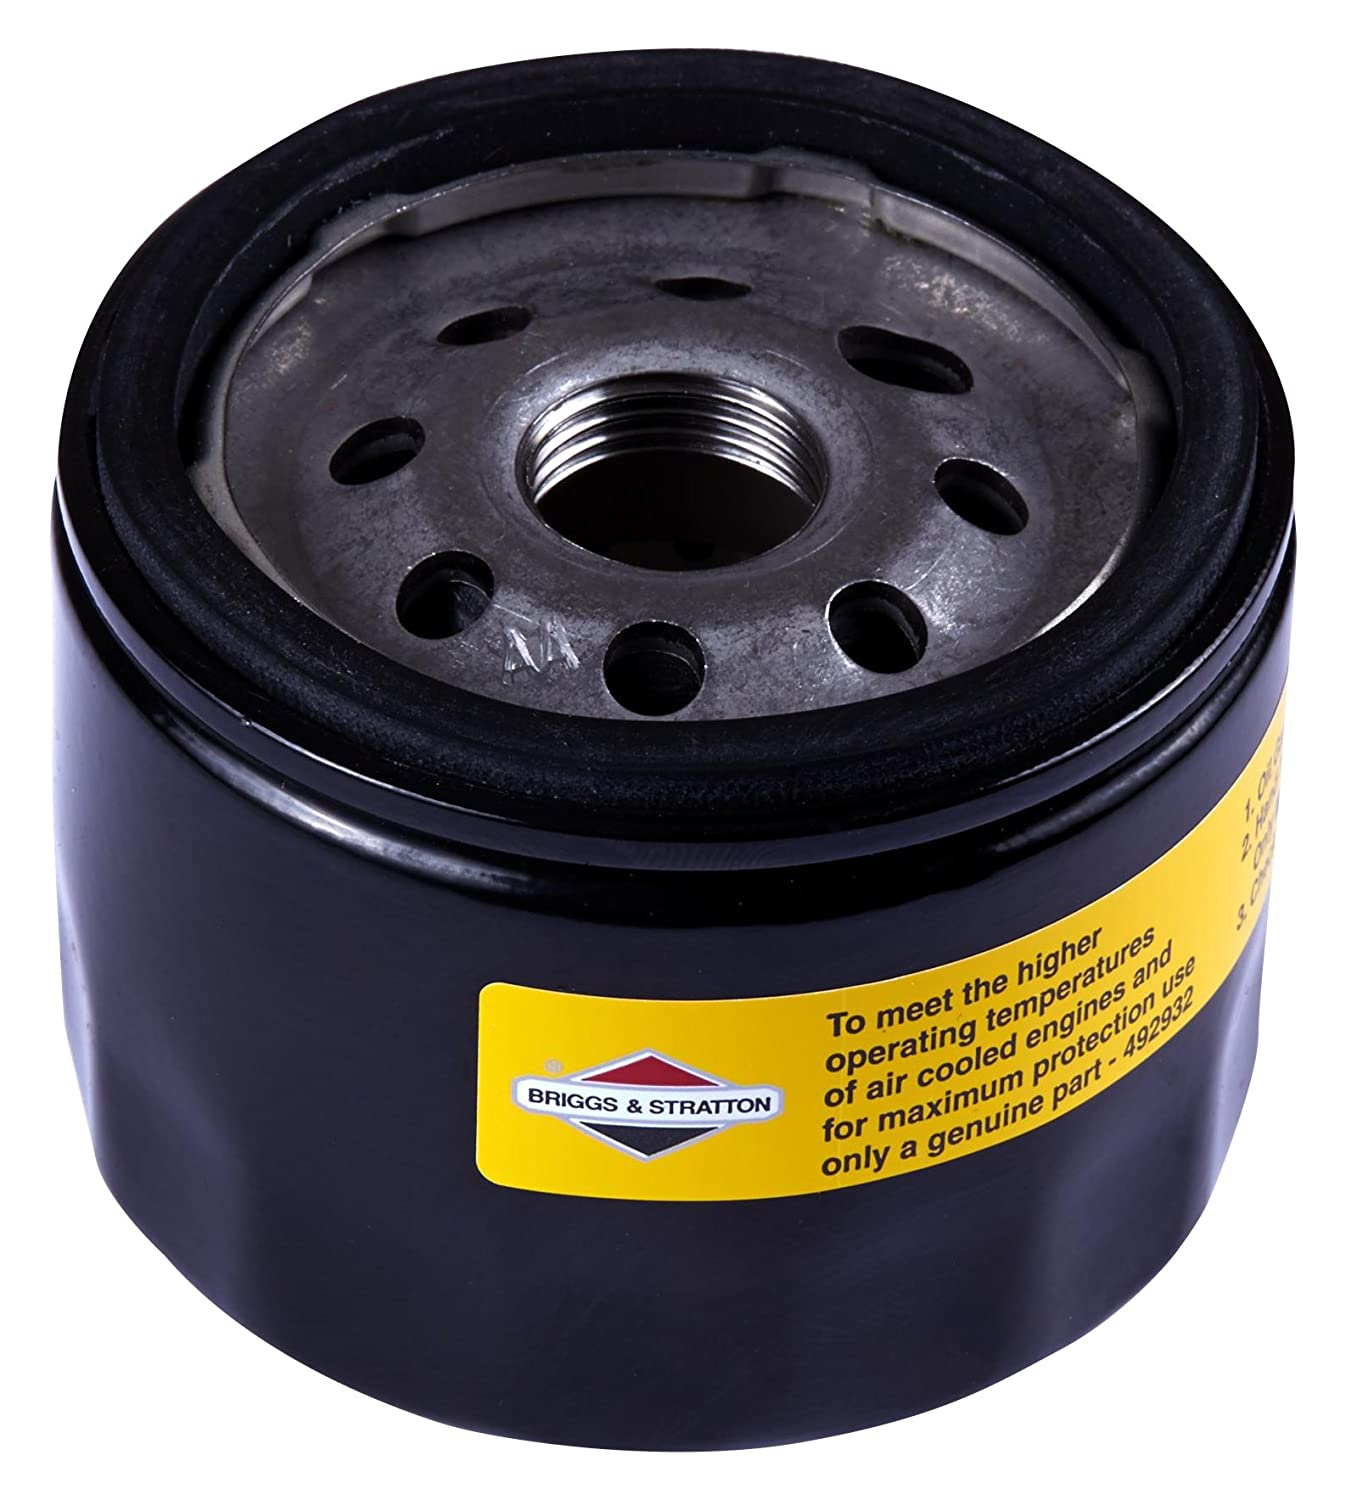 Amazon.com : Briggs & Stratton 492932S Oil Filter : Lawn Mower Oil Filters  : Garden & Outdoor